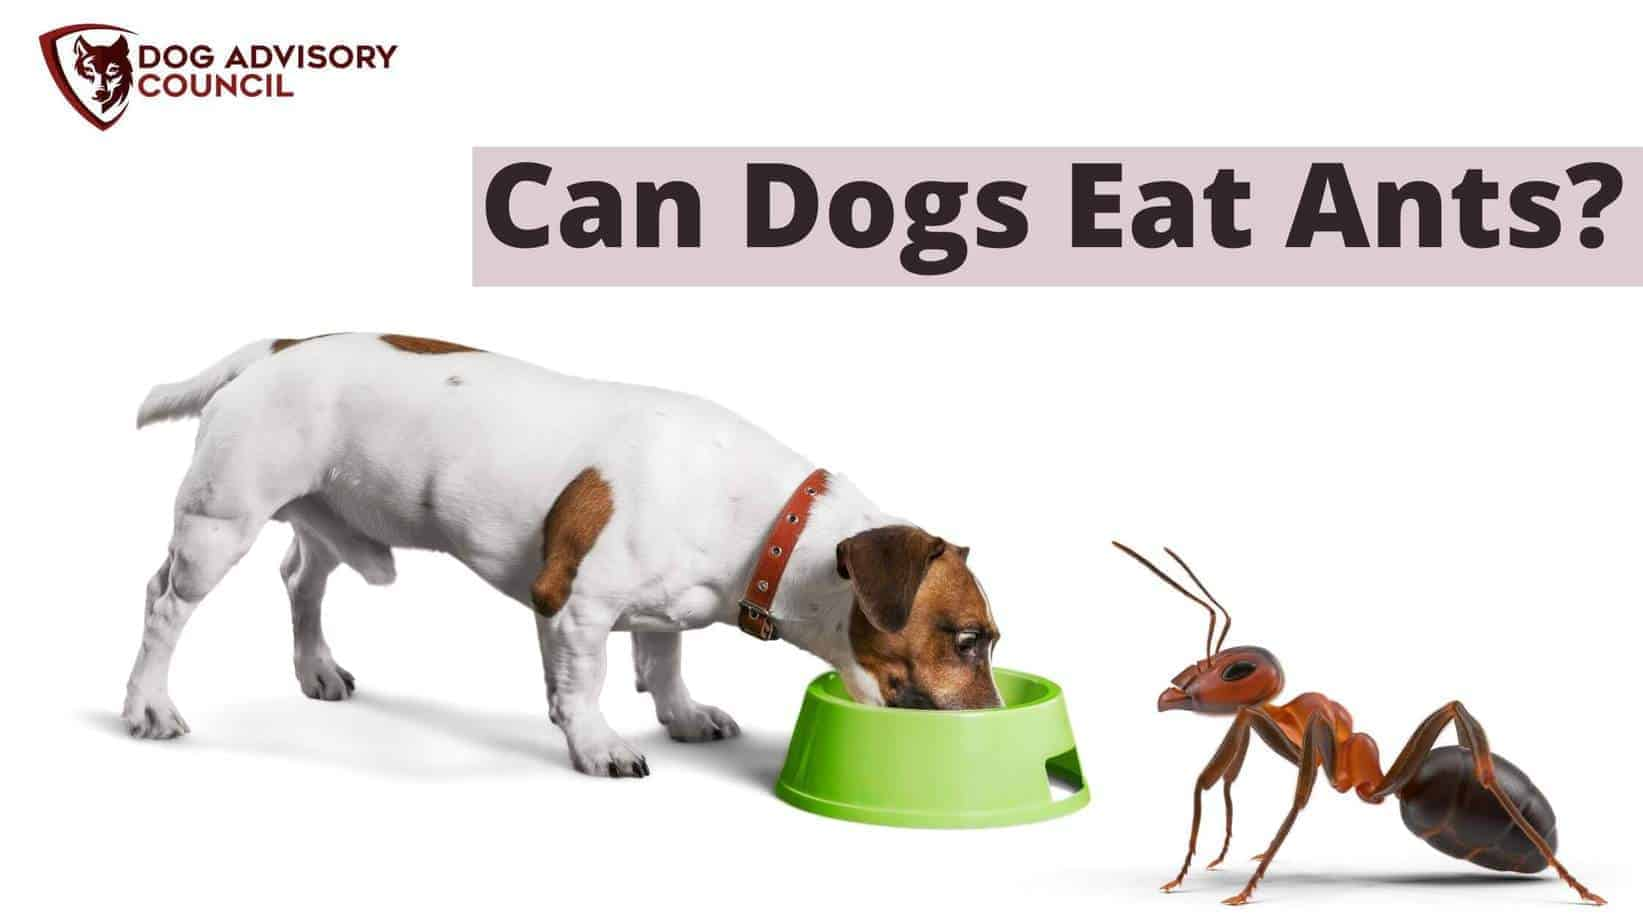 Can dogs eat ants